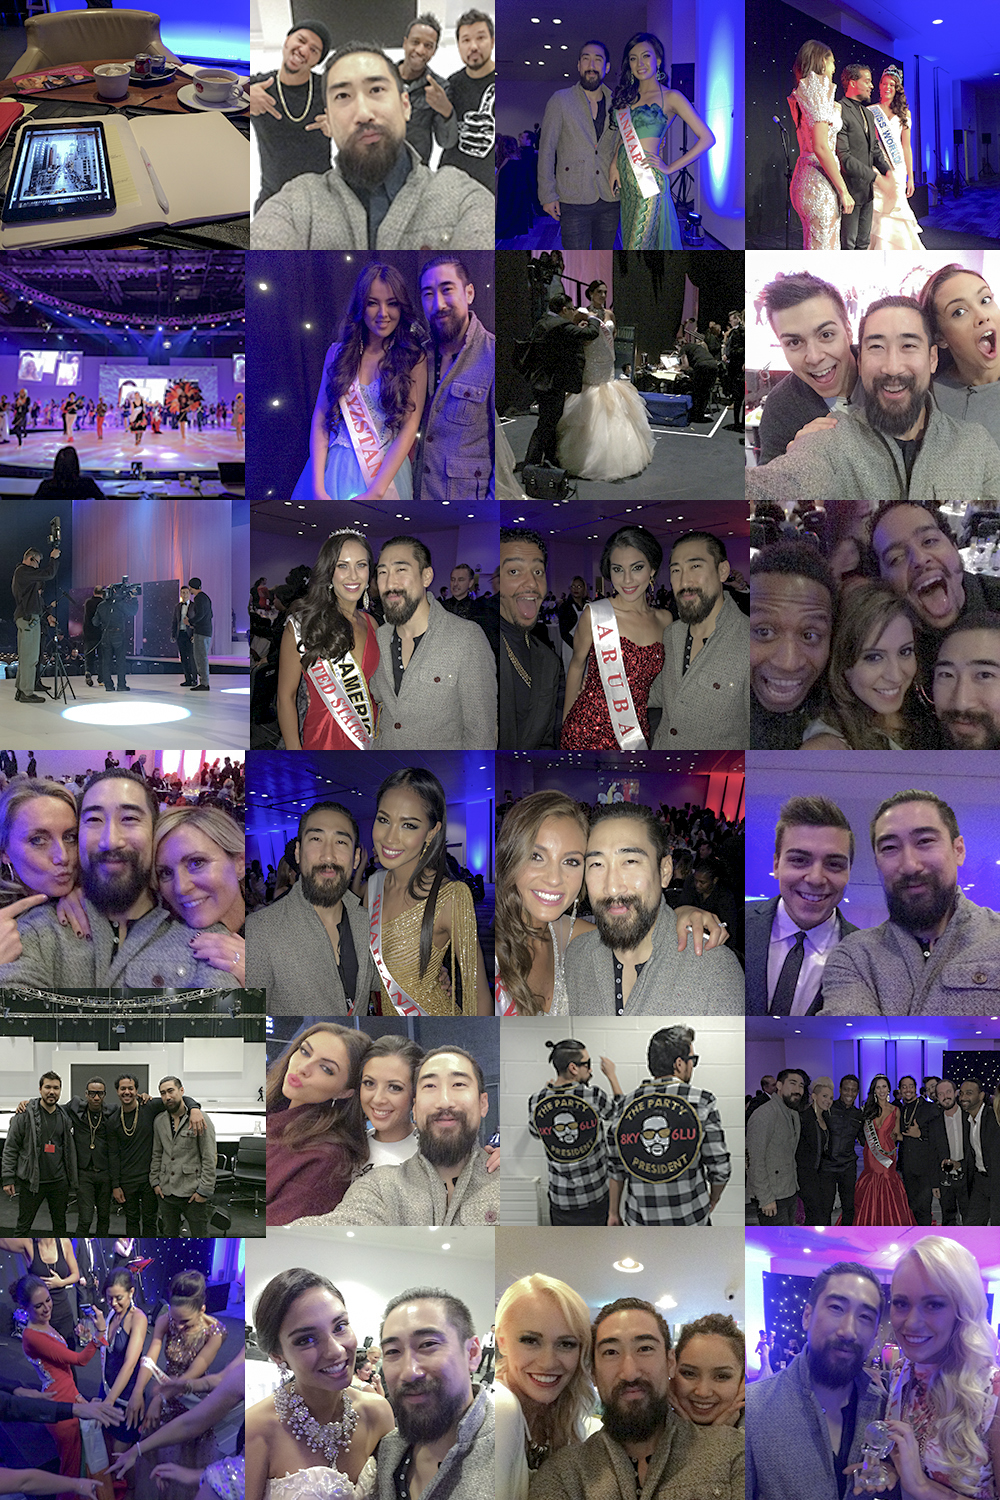 Too many photos to post . Too busy having fun to take photos . Congratualtions to MIss South Africa for the crown and all the other MIss's for a great competition